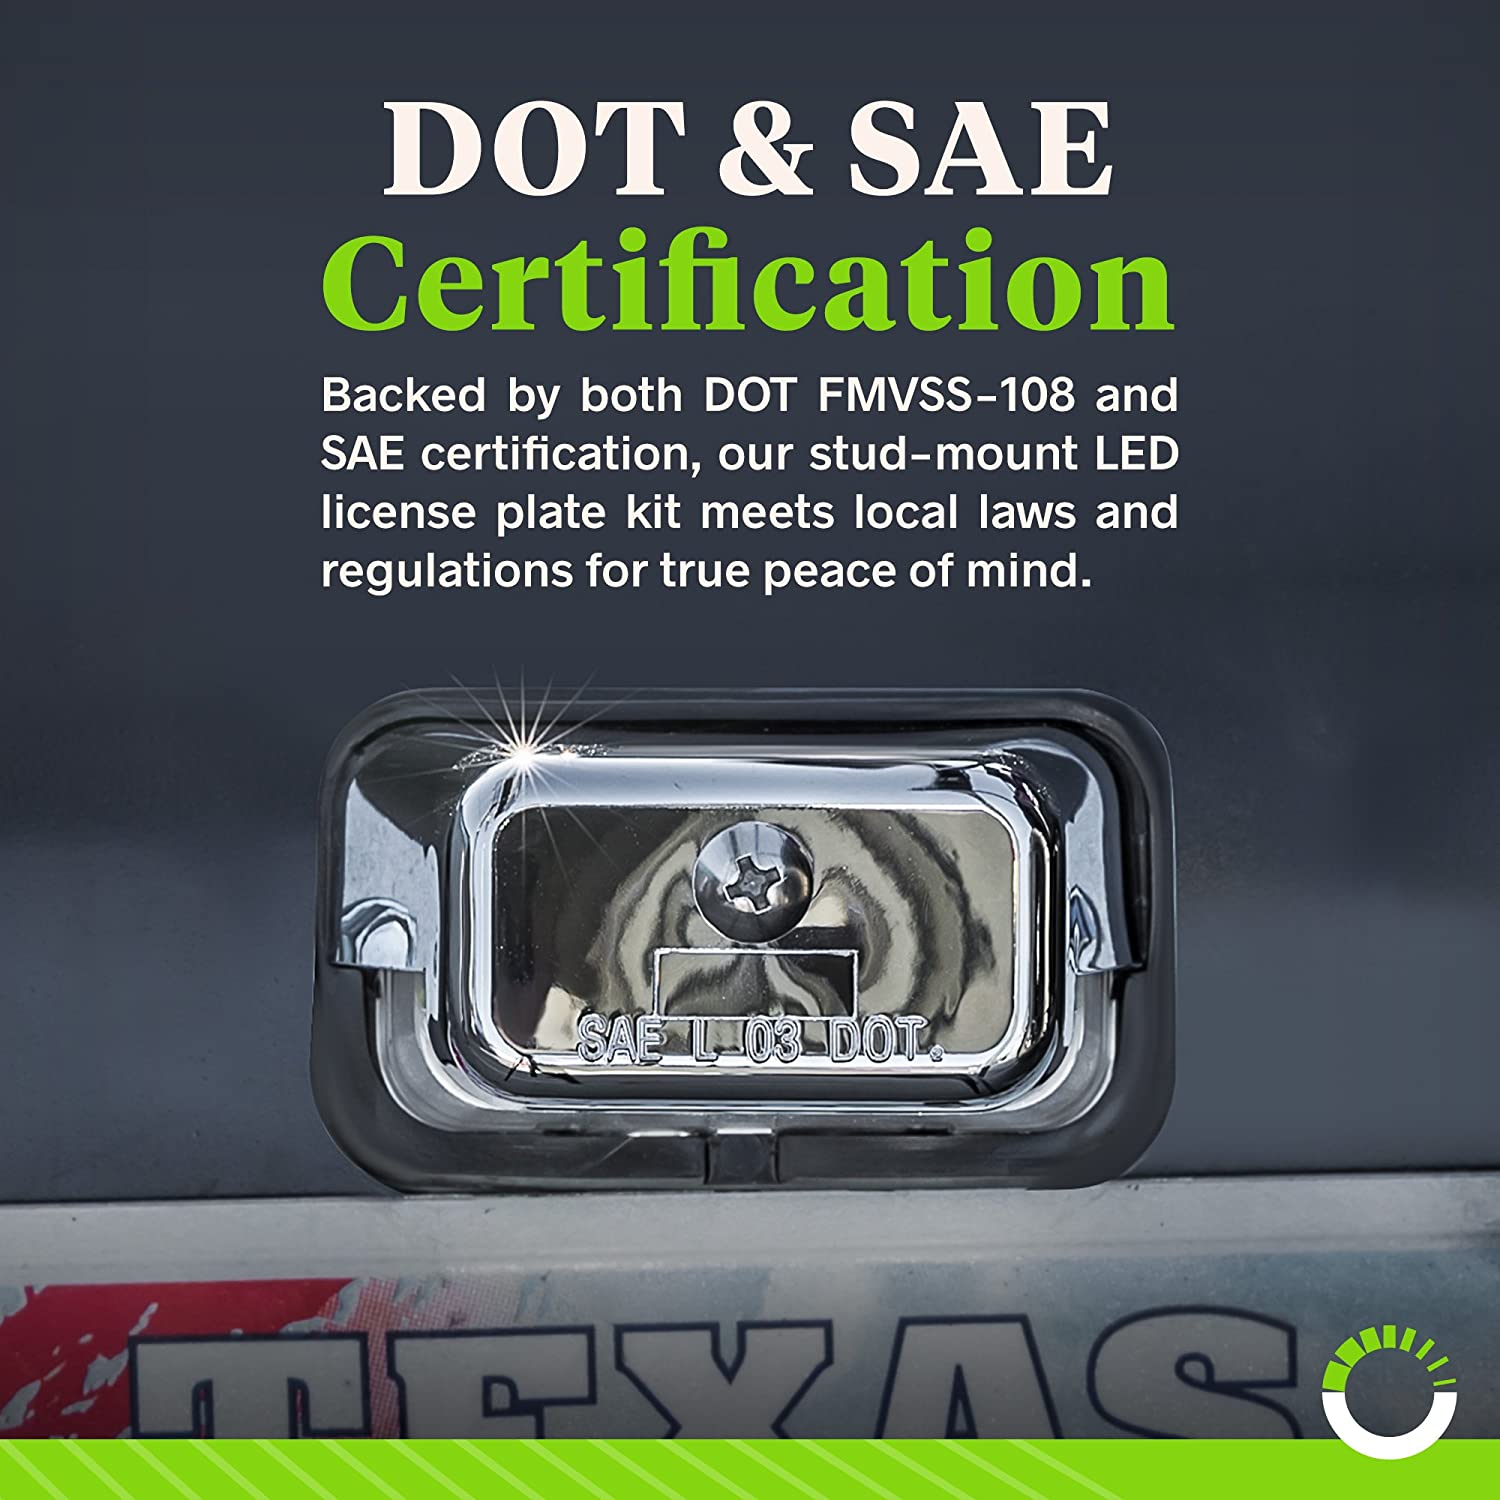 Chrome Housing Trucks /& Boats Ultra-Durable IP67 Waterproof Rated RVs License Tags for Trailers Surface-Mount LED Trailer License Plate Lights DOT//SAE Certified